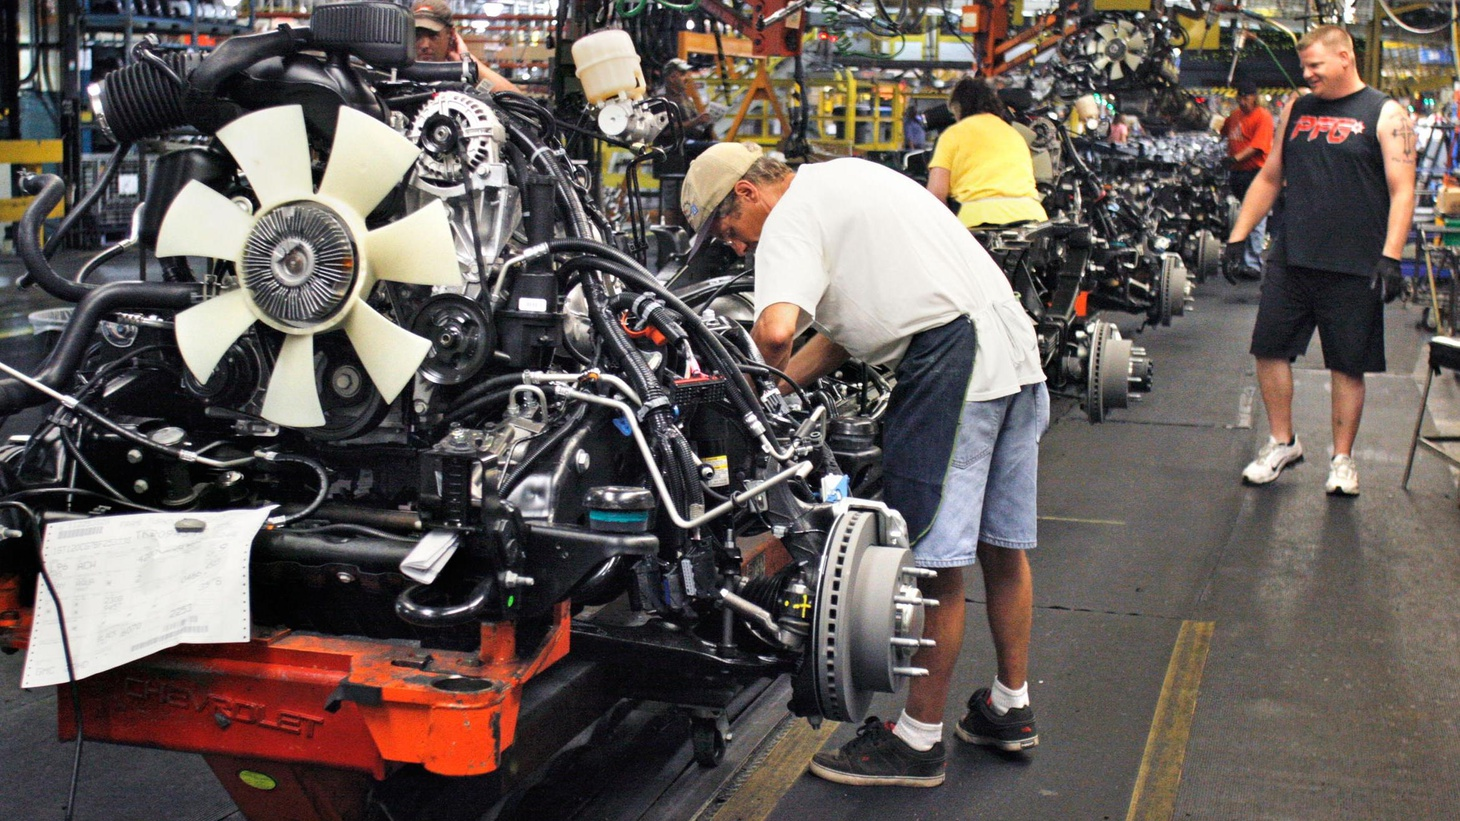 The UAW is in the thick of labor negotiations with the Big Three. How have the union's fortunes changed? Has the government bailout of the auto industry impacted Detroit?